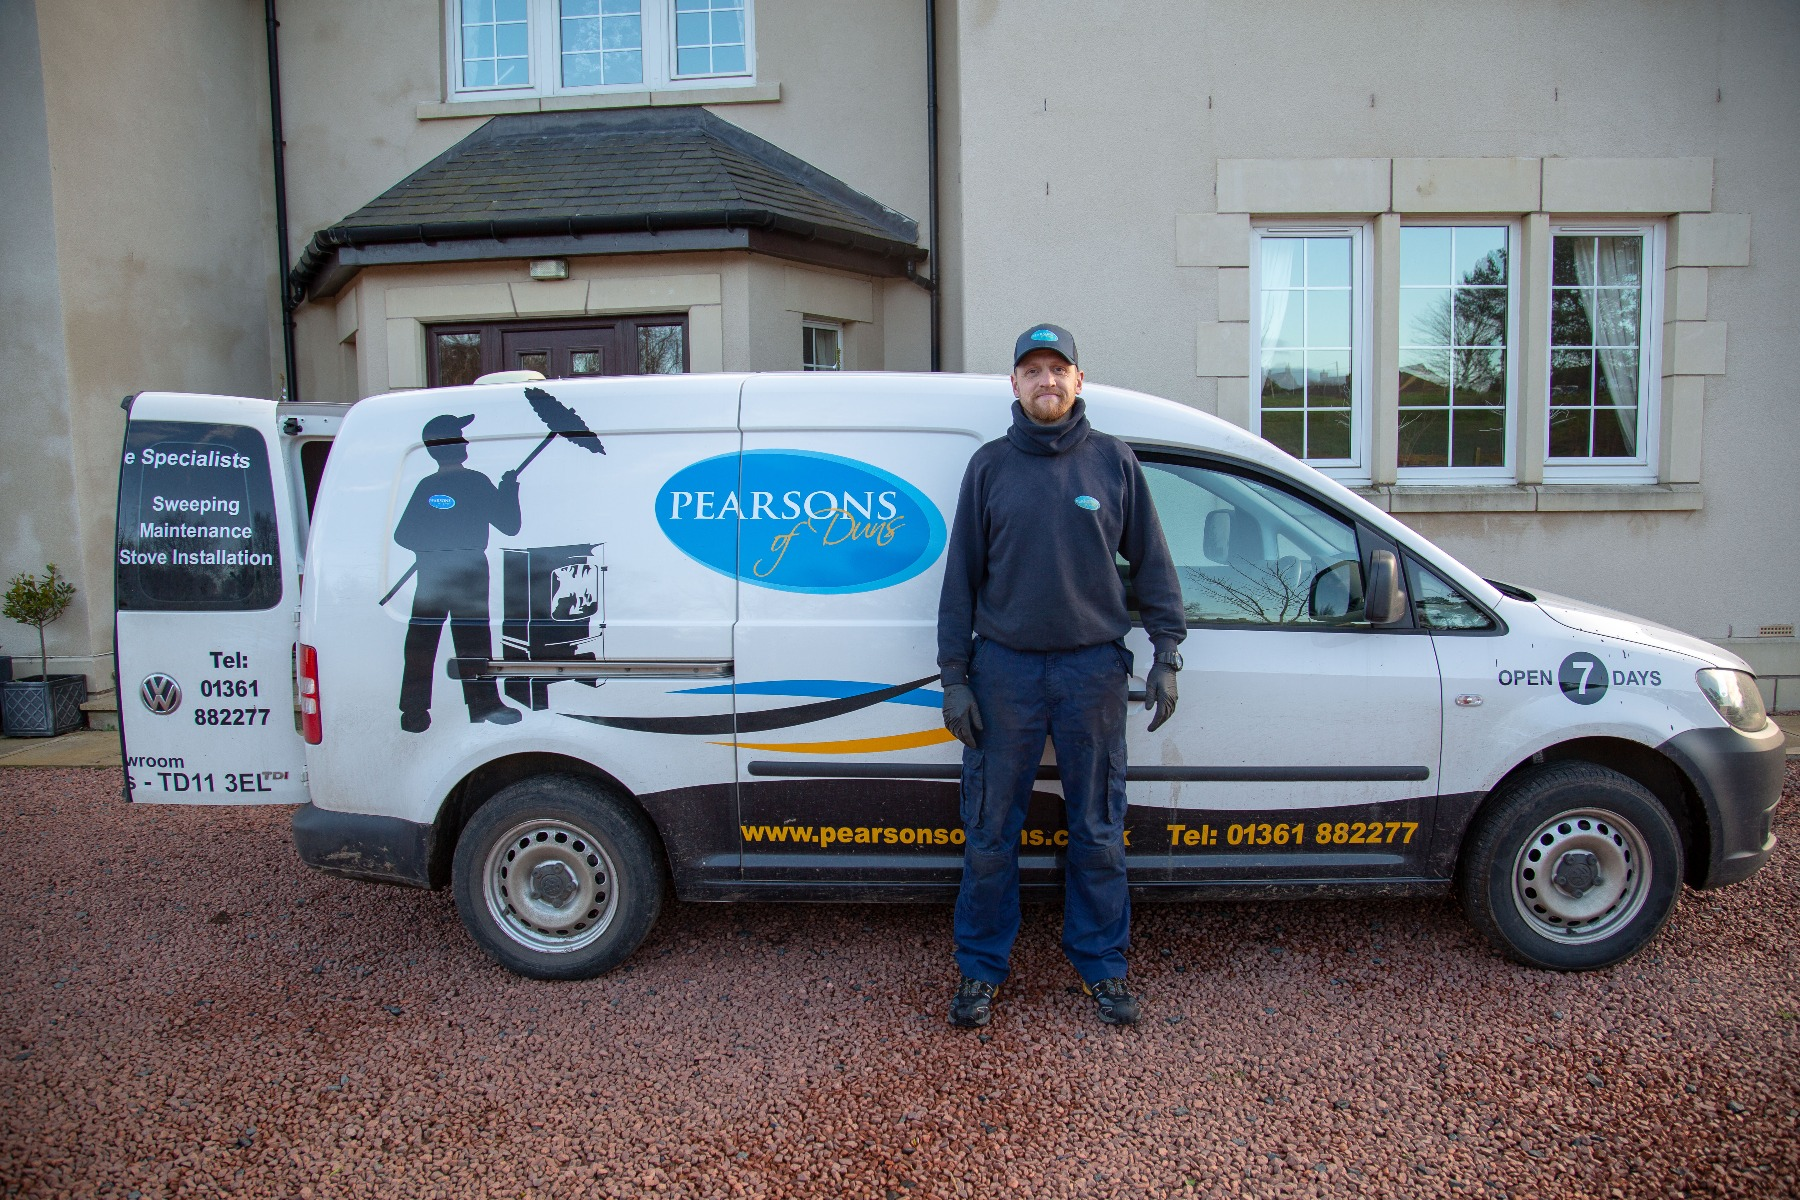 Pearsons Chimney Sweep